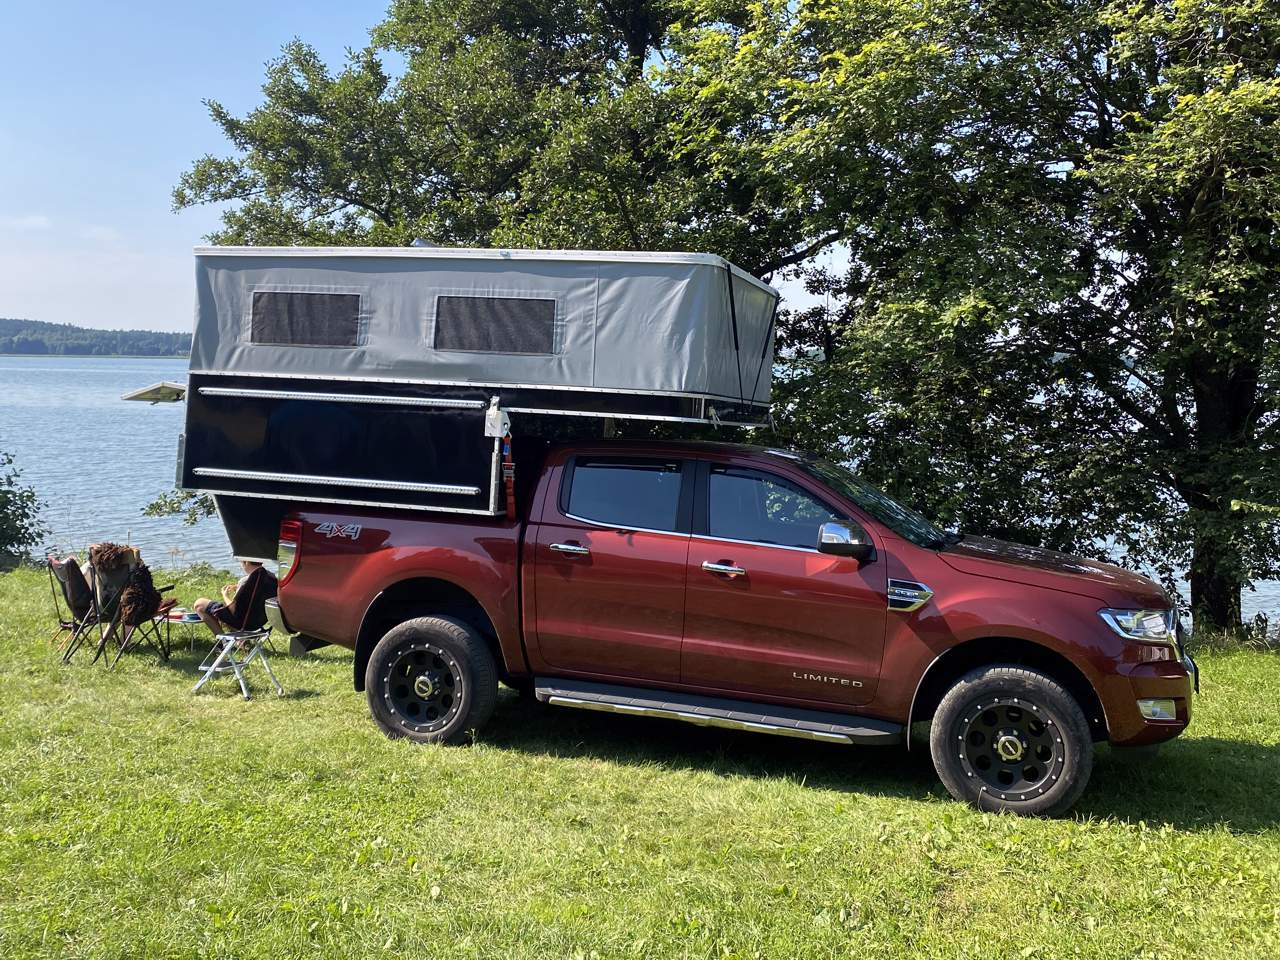 Camp Crown Wohnkabine Overlander 220 Modell 2021 auf Ford Ranger Limited